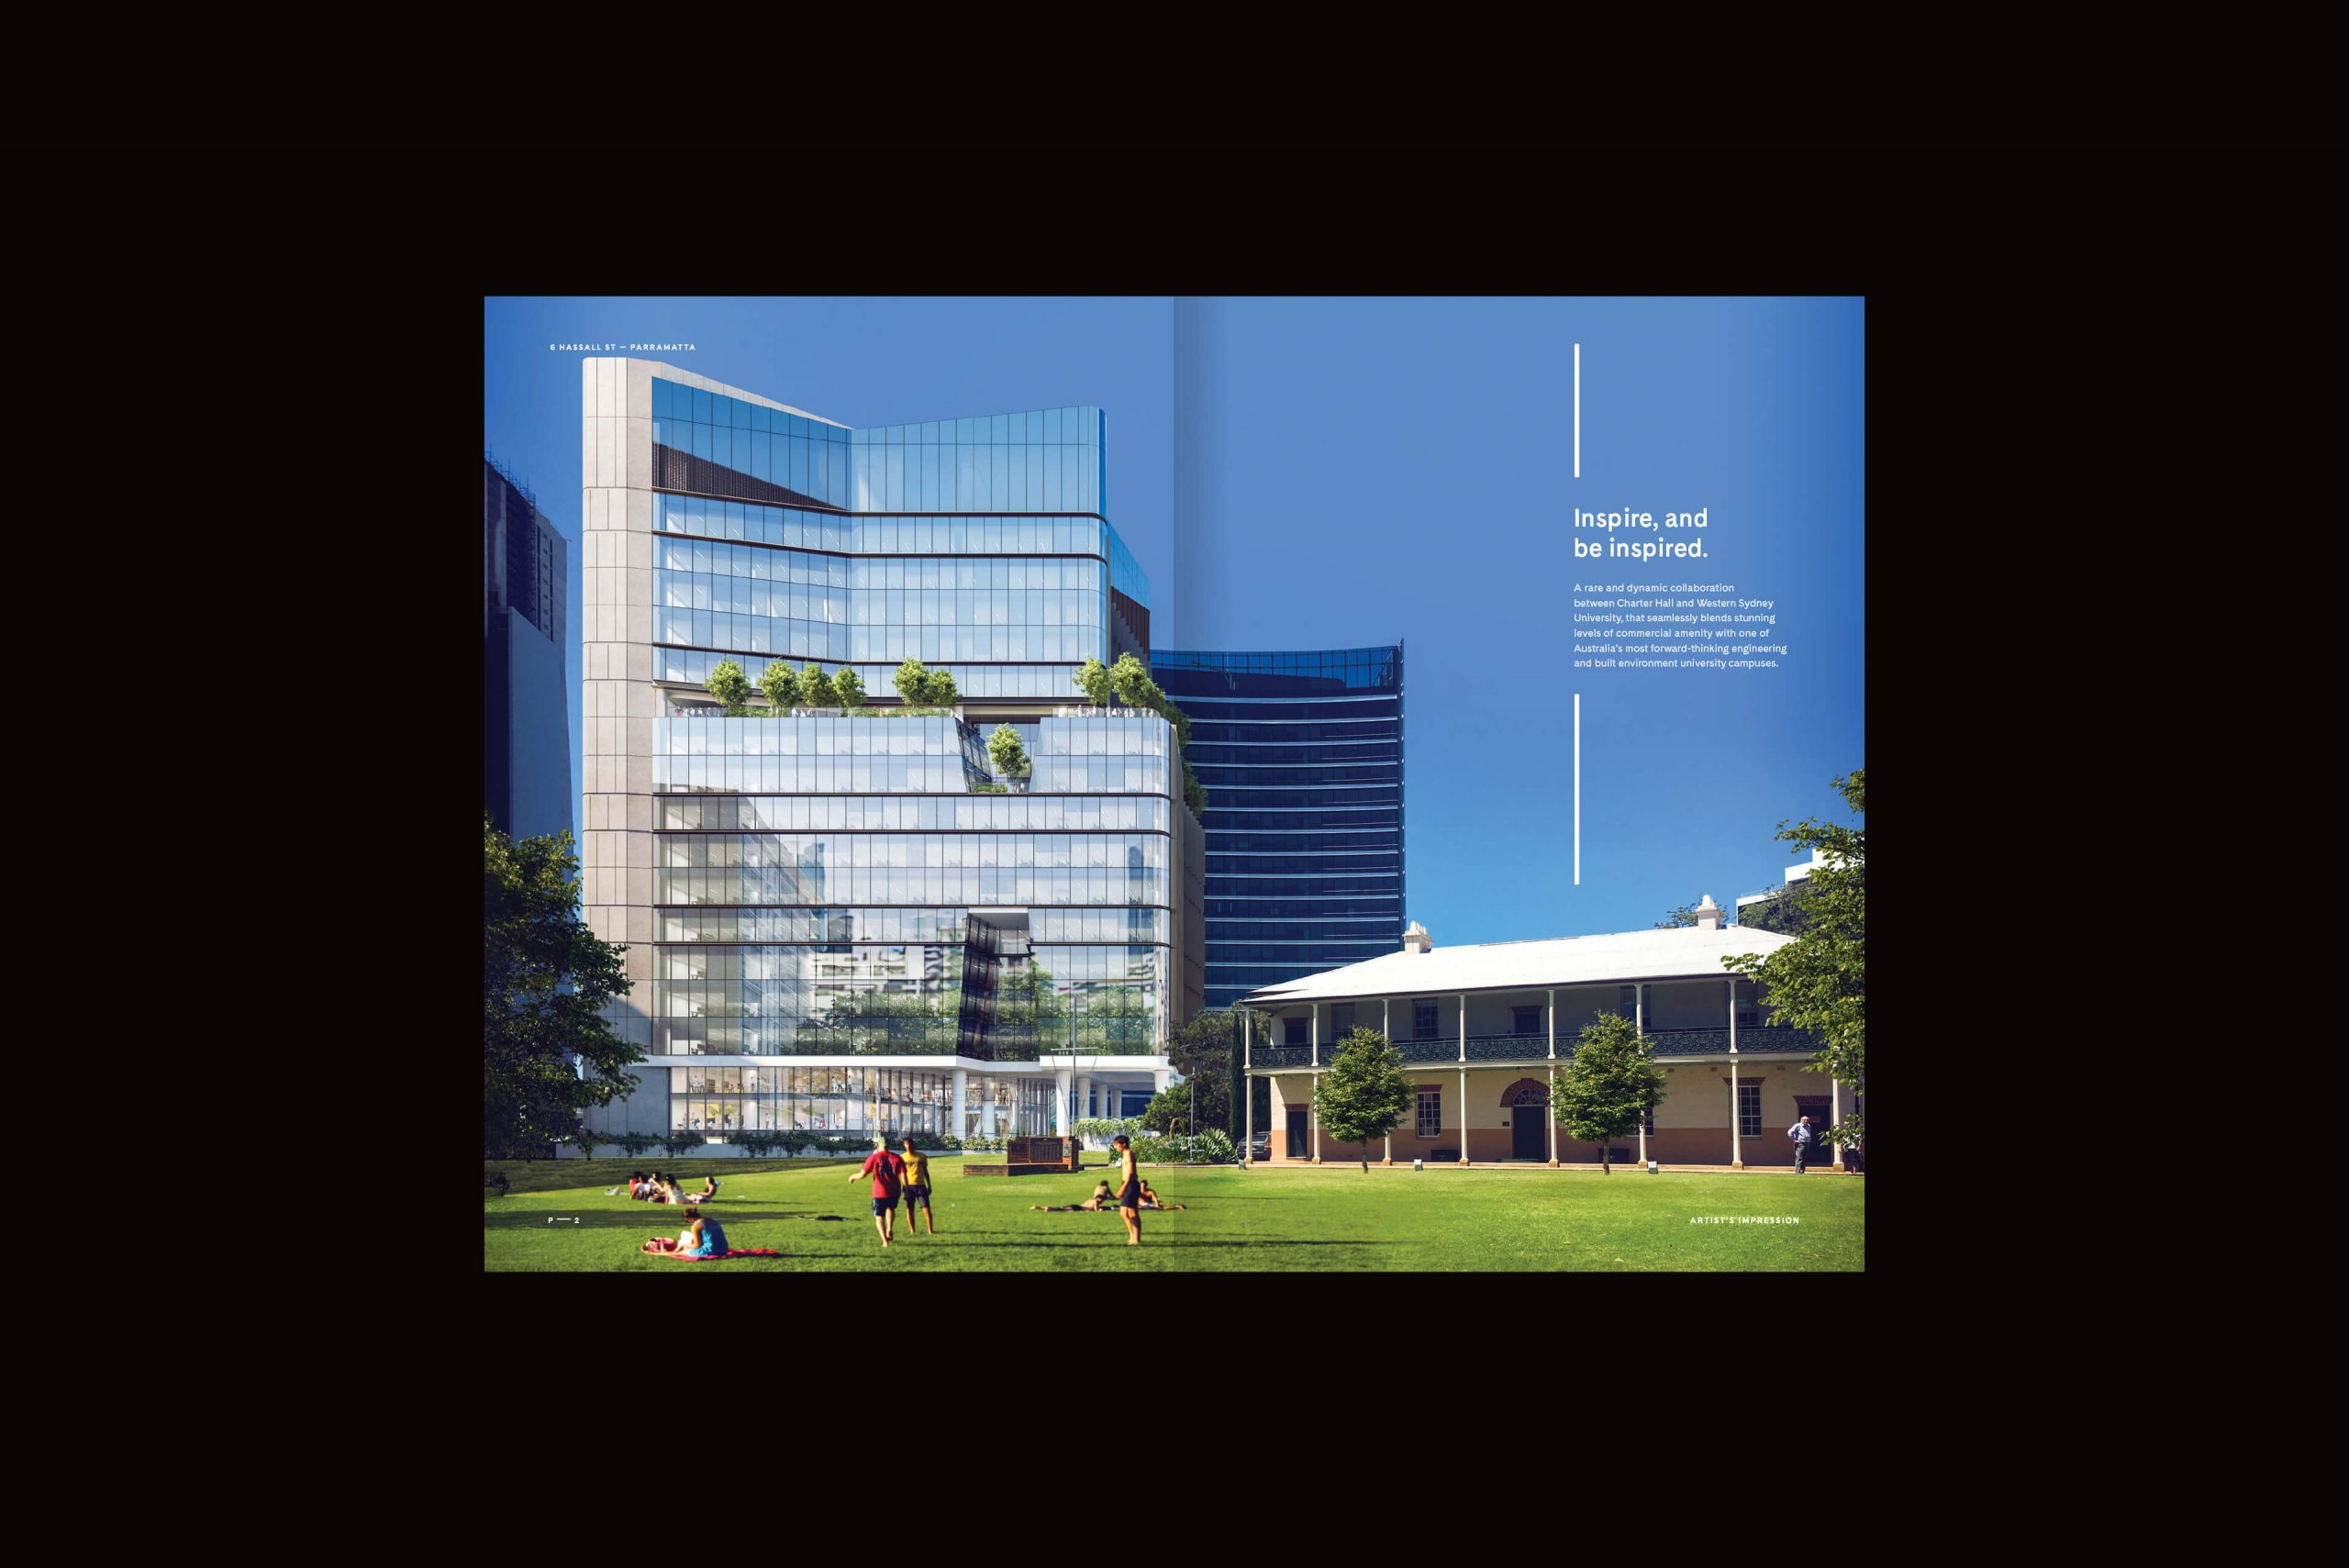 6 Hassall St Property Brand for Charter Hall - Brochure Spread 1